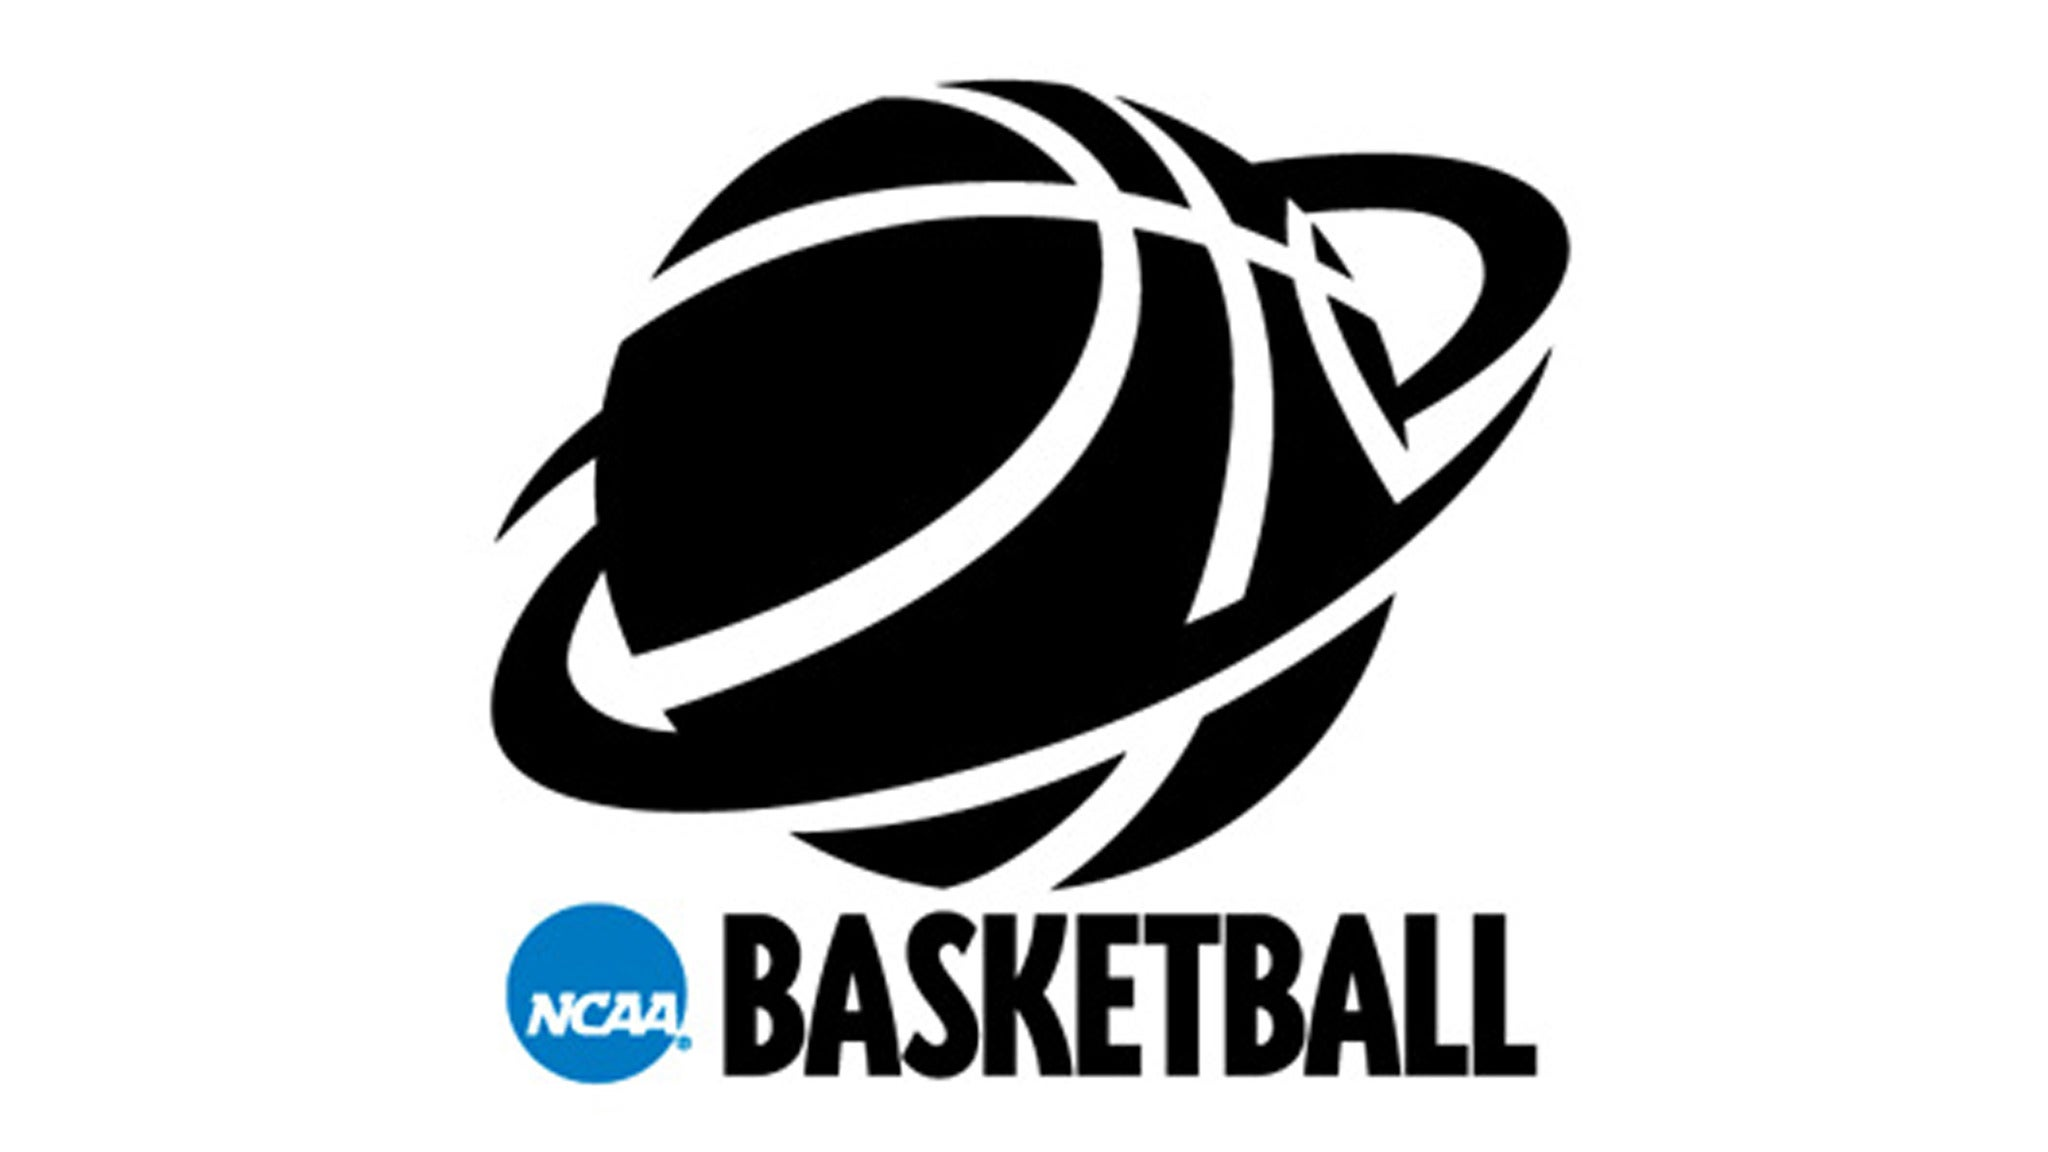 SORRY, THIS EVENT IS NO LONGER ACTIVE<br>NCAA Mens Basketball Tournament at SAP Center at San Jose - San Jose, CA 95113